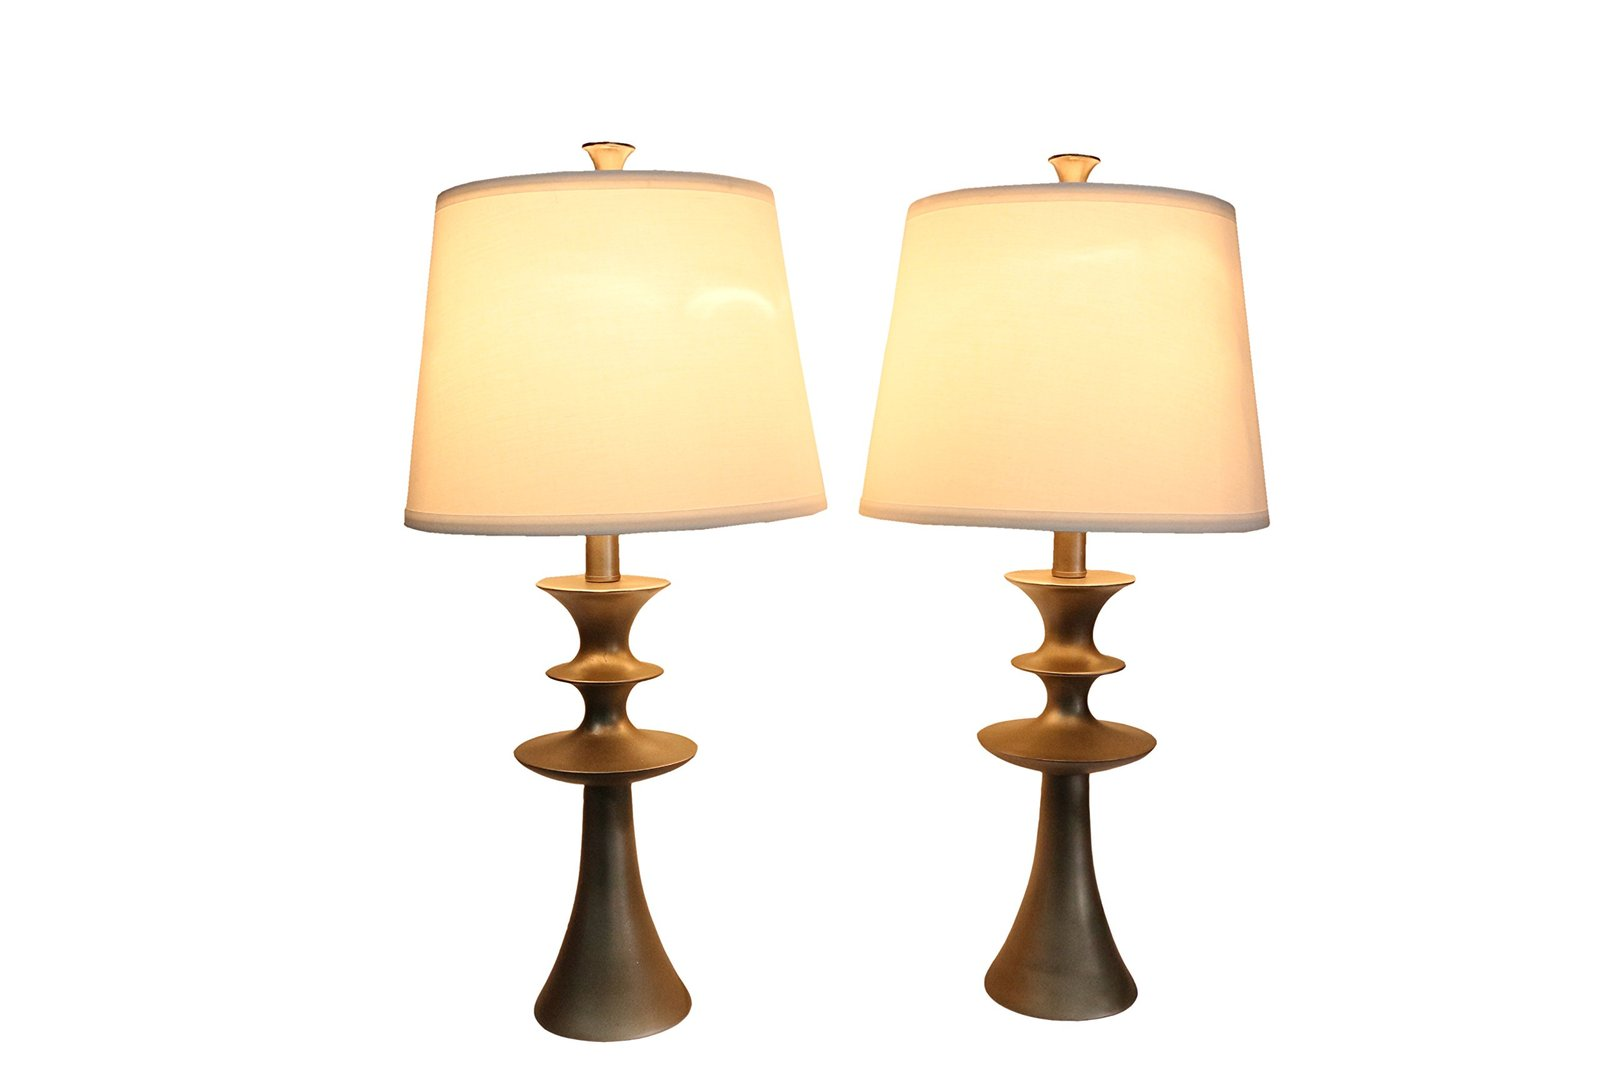 Urbanest Set of 2 Netto Table Lamps, Pewter